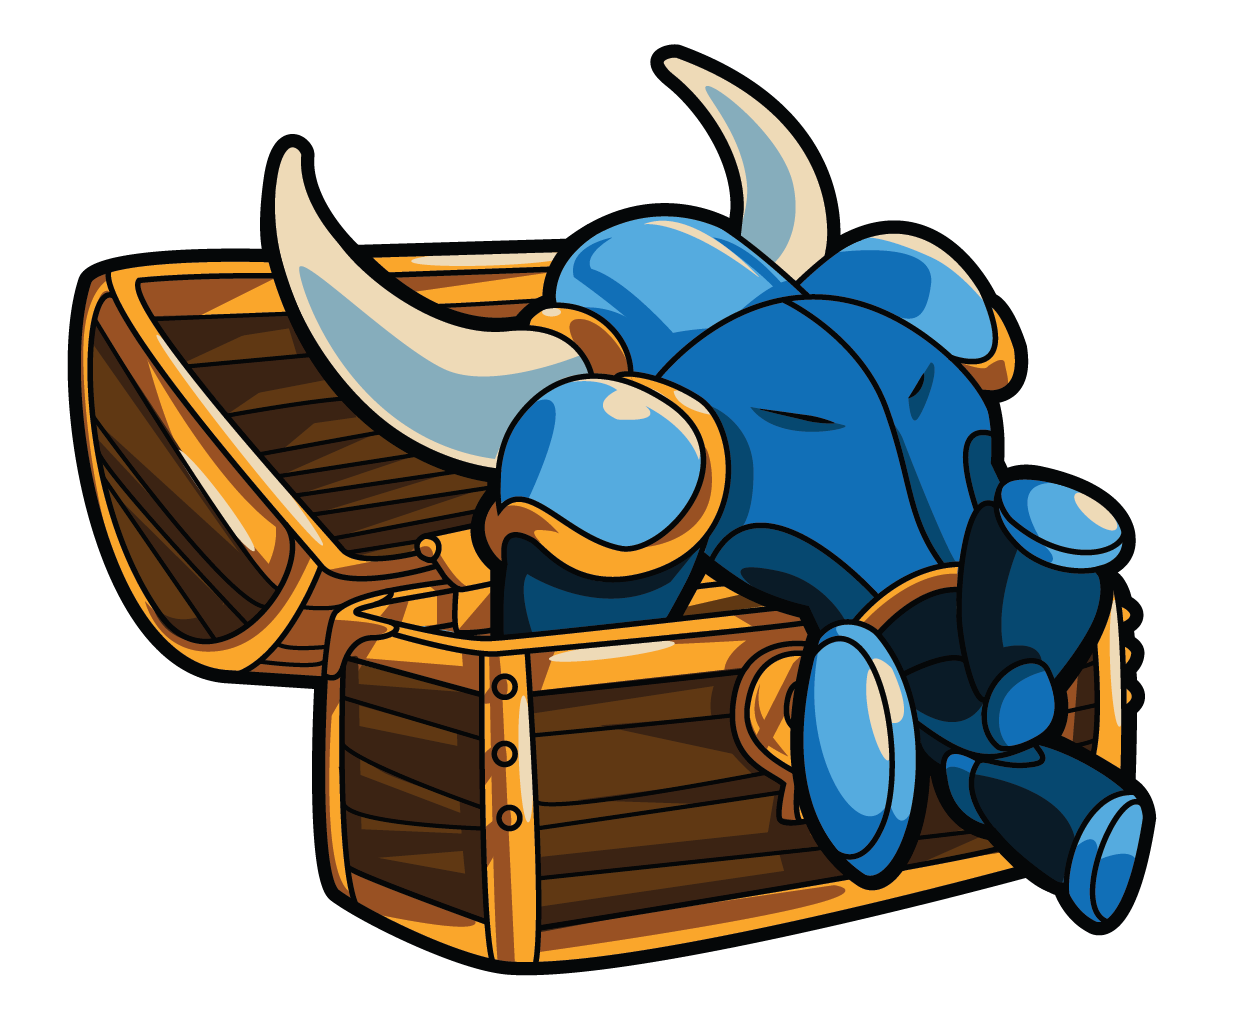 Gaming clipart nes. Shovel knight is a